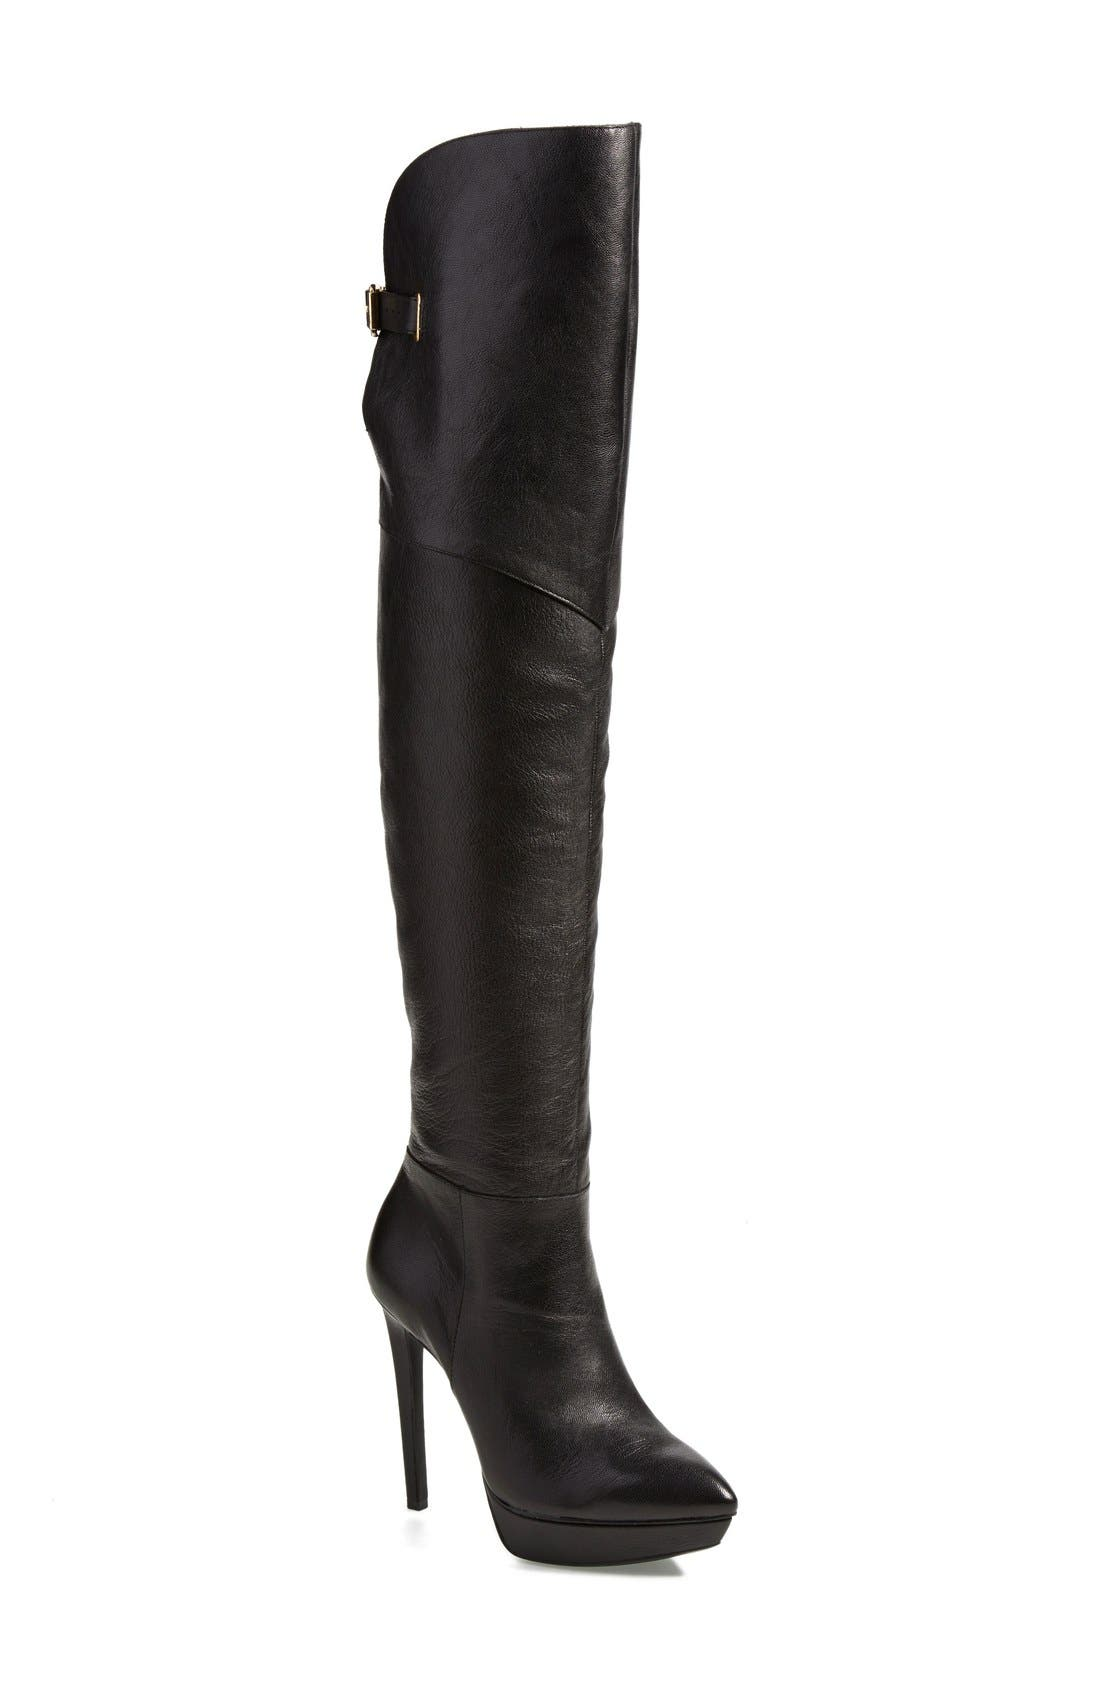 JESSICA SIMPSON 'Valentia' Over the Knee Platform Boot, Main, color, 001